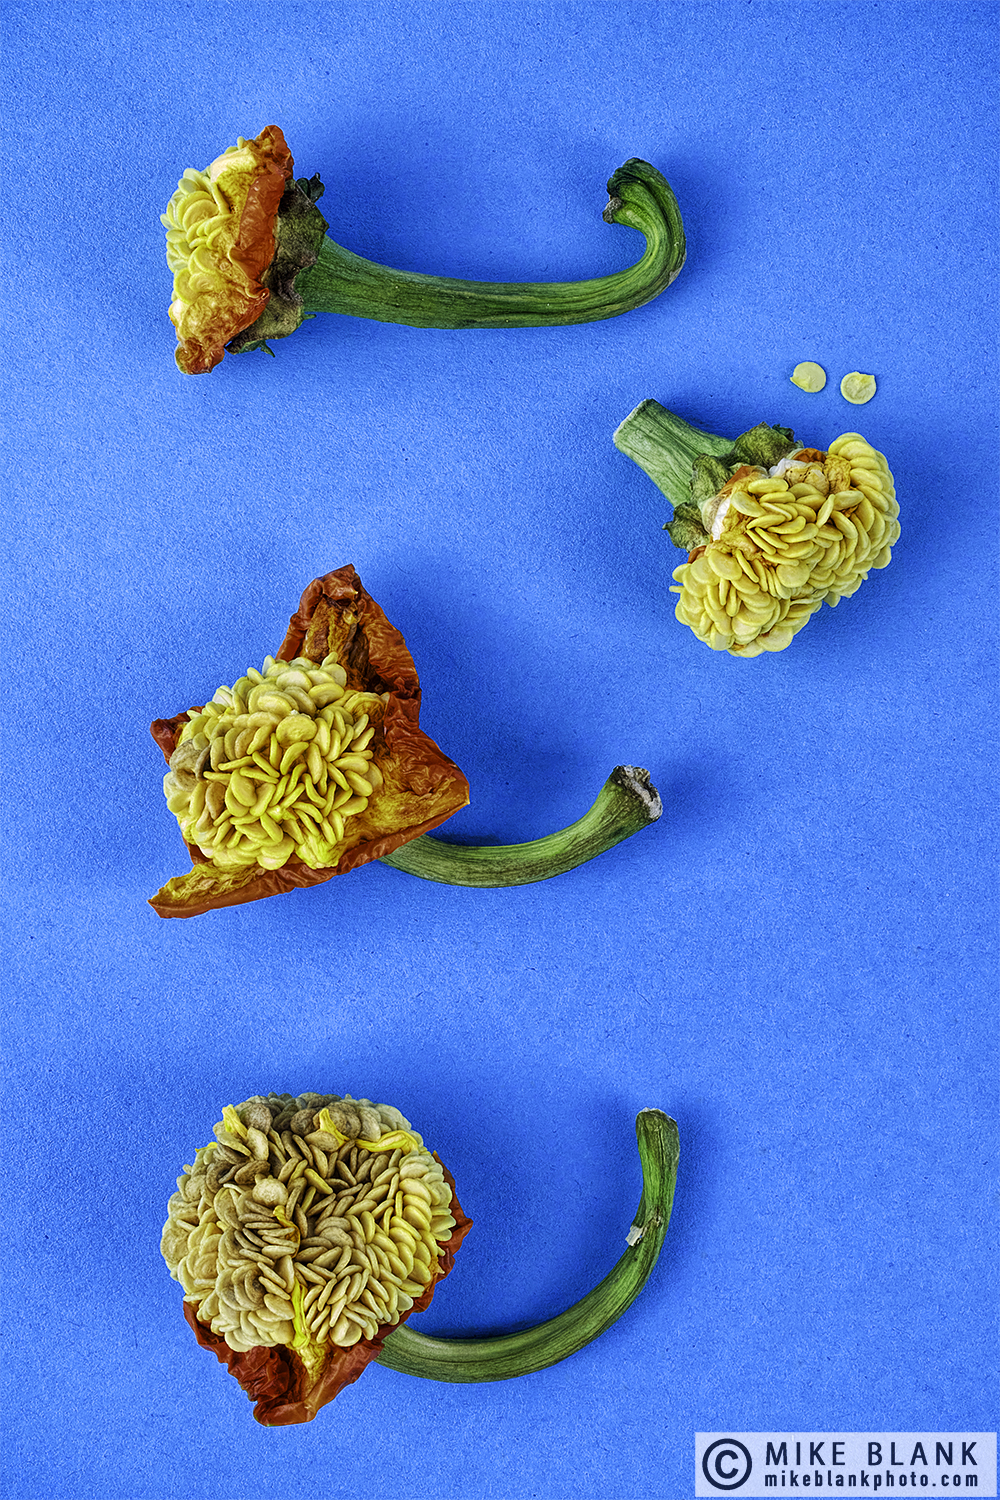 Sweet pepper seeds #6, 2017